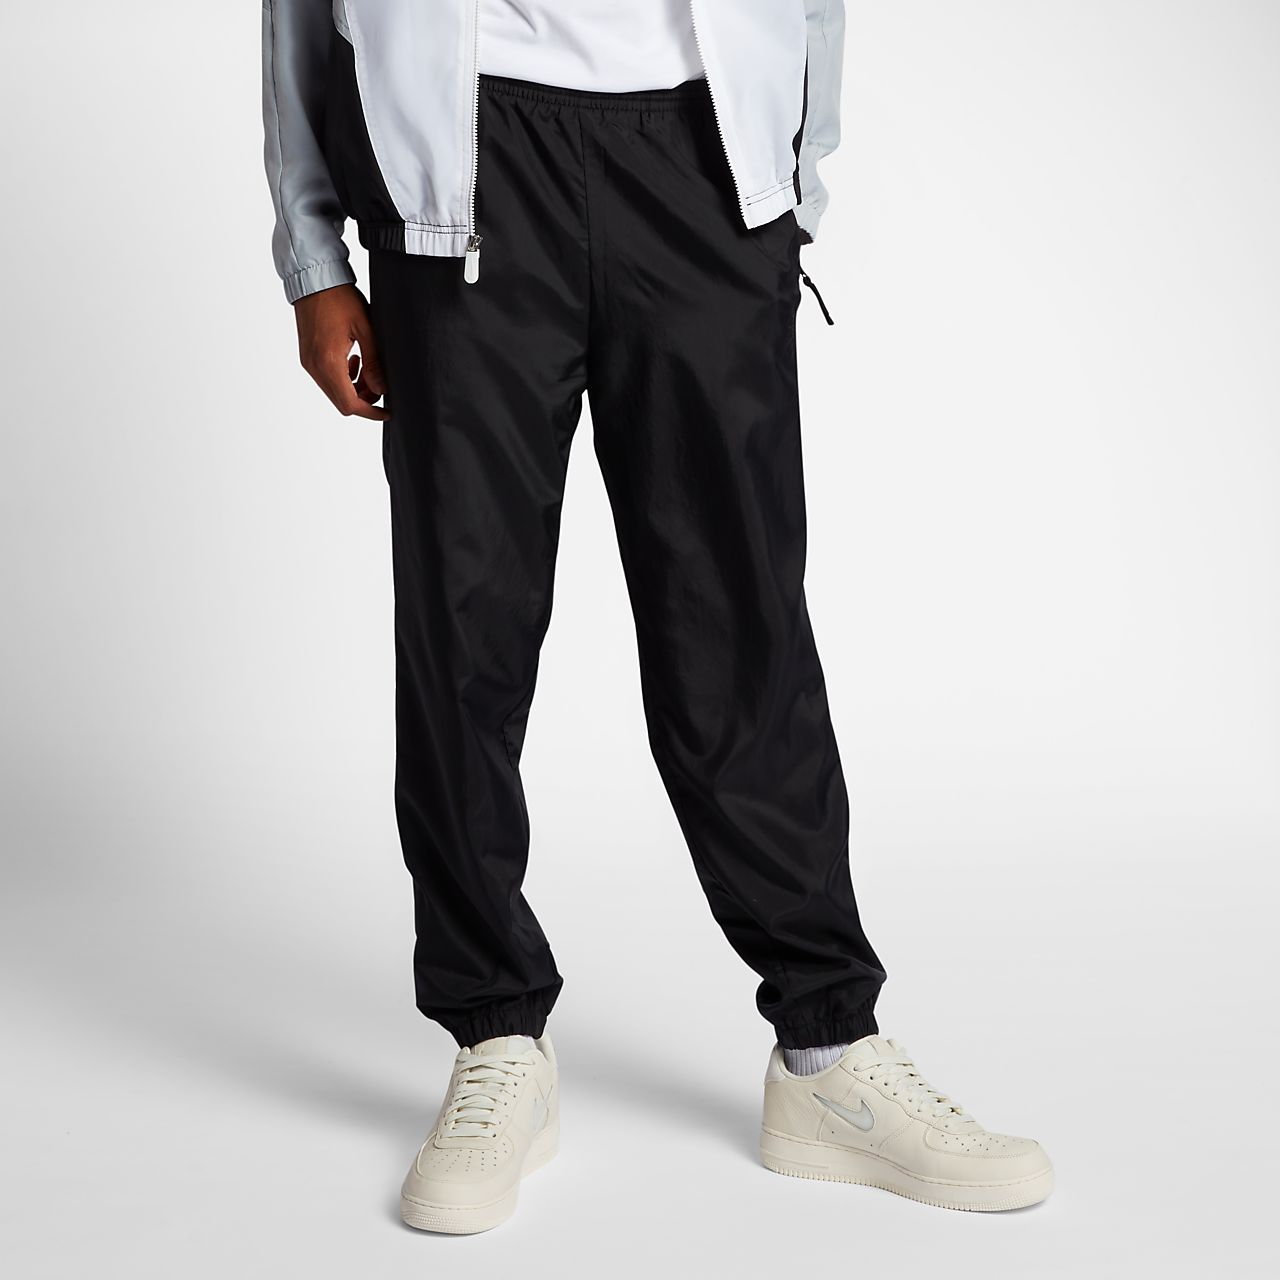 nike tracksuit. nikelab heritage unisex track suit (2 piece: pant and top) nike tracksuit